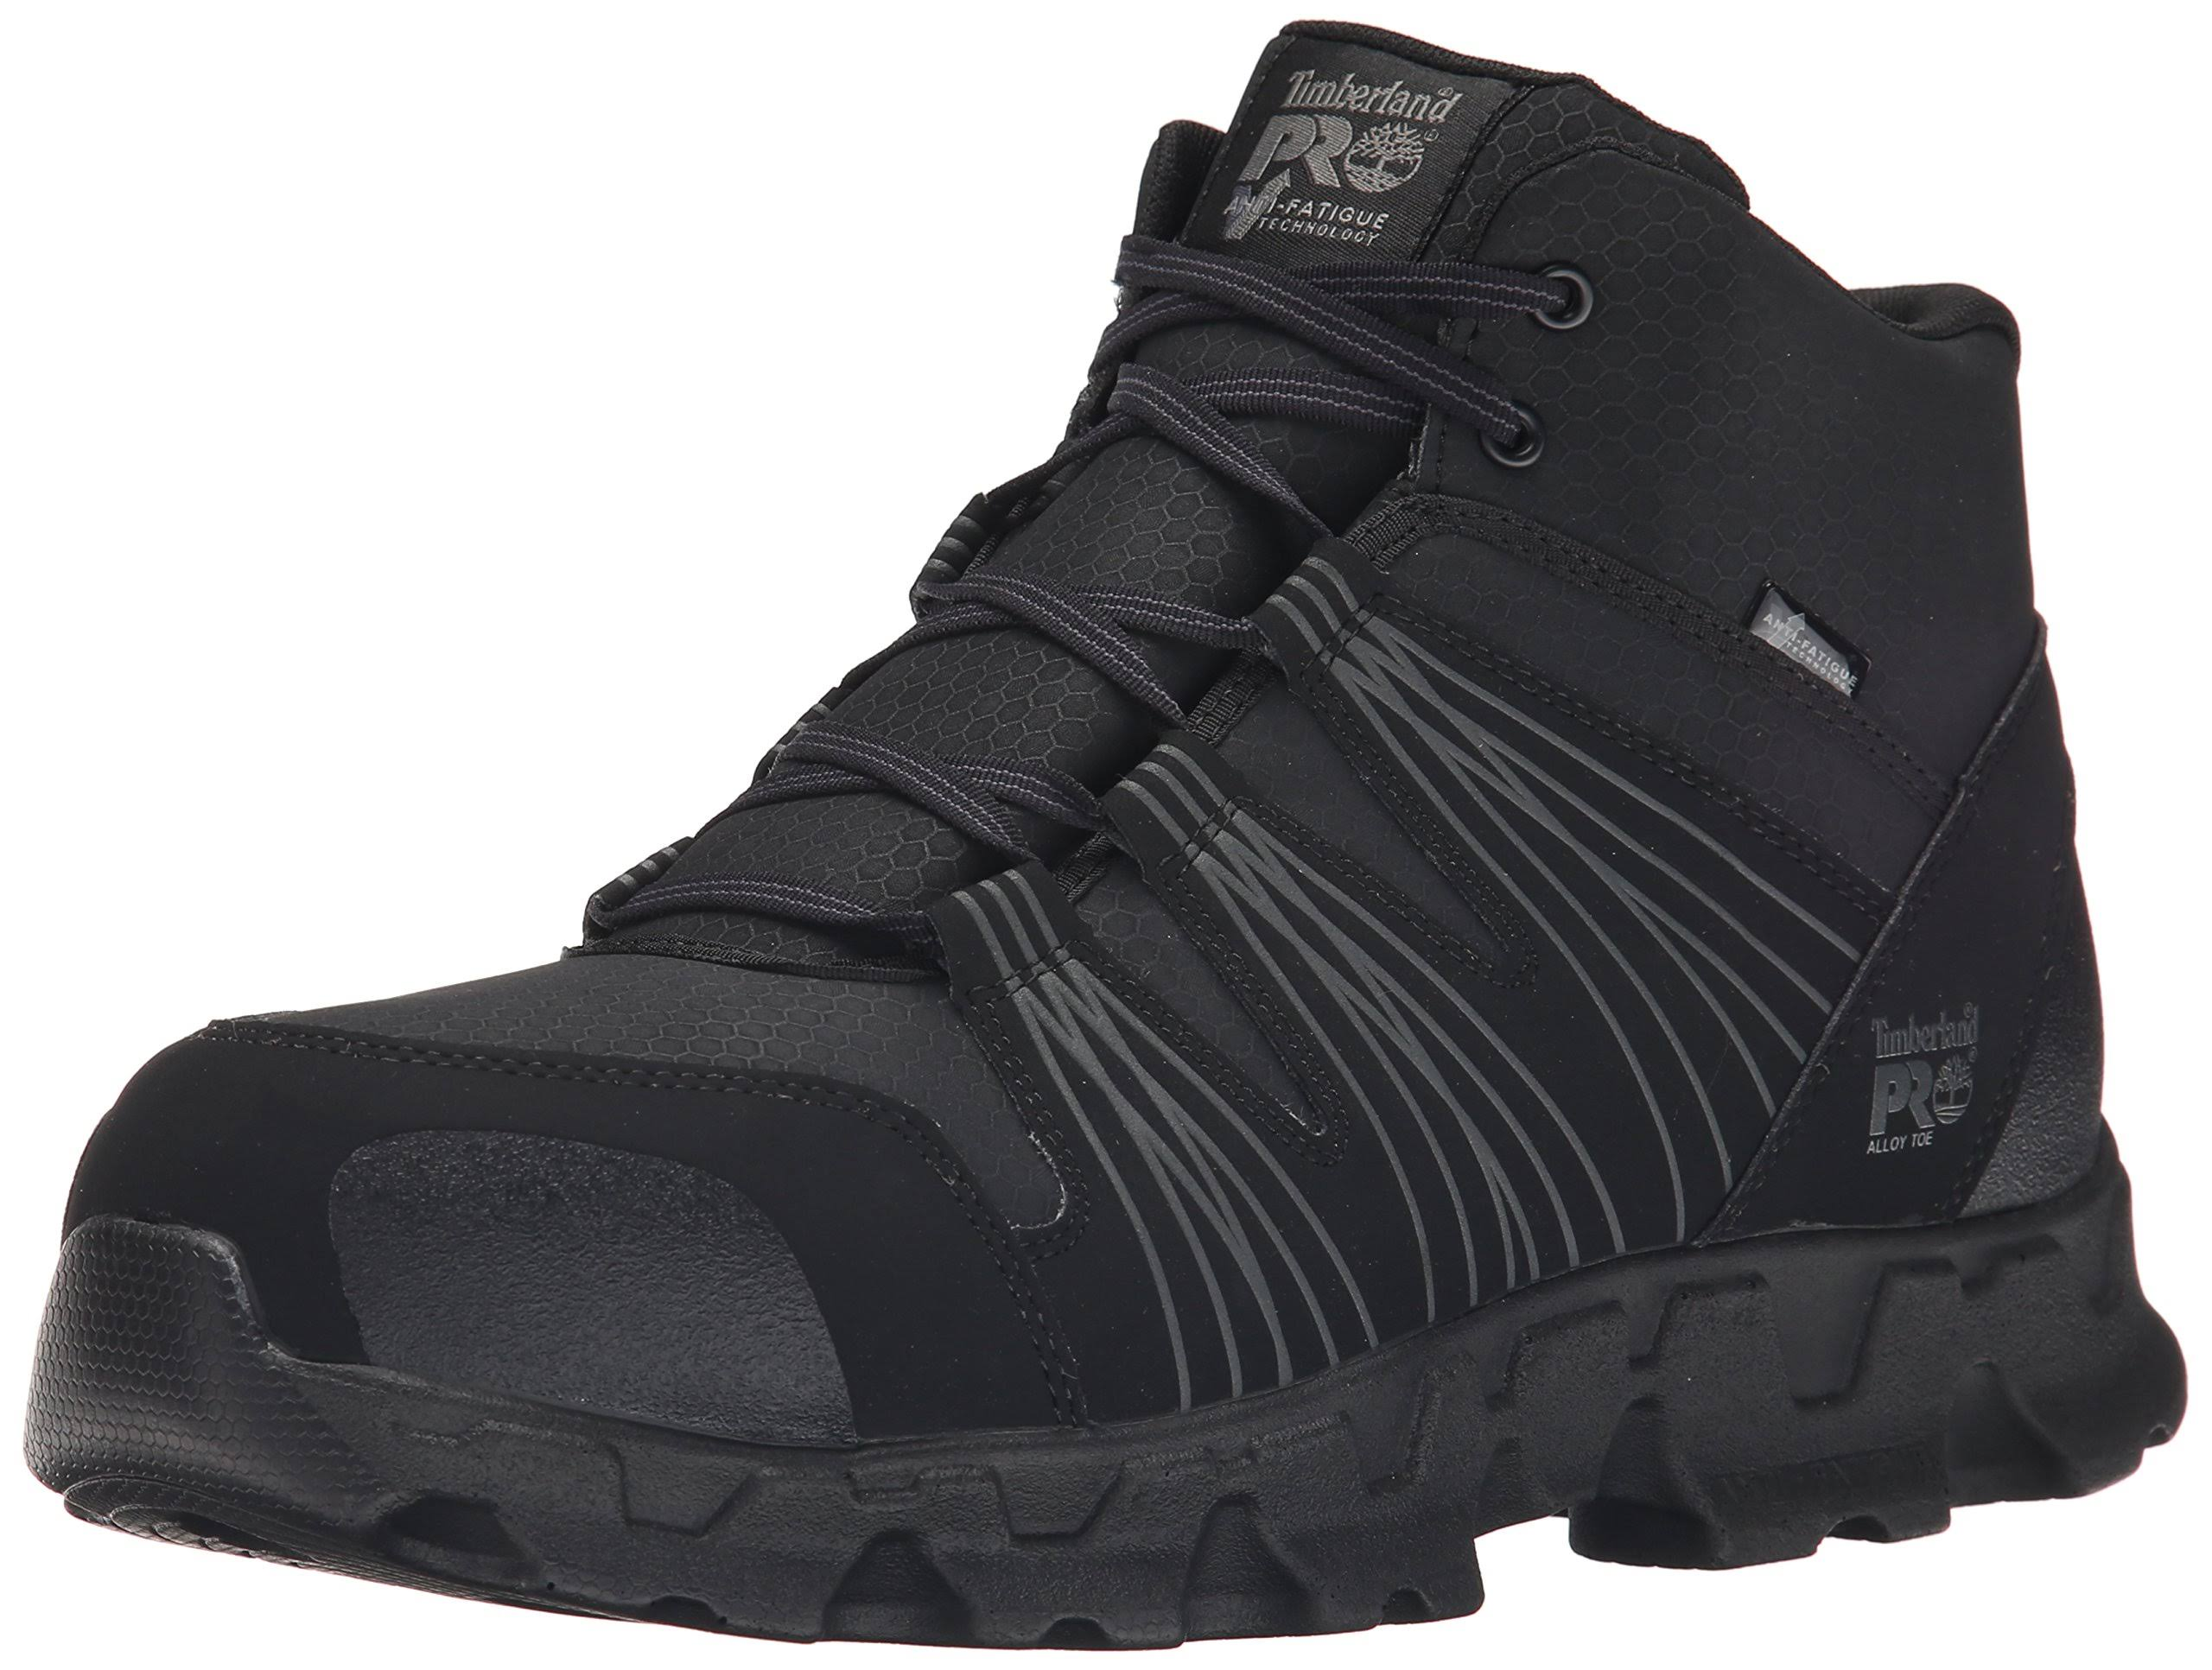 A11qf Boot Alloy Pro Powertrain Work Timberland Toe Esd f6BZOSUqw